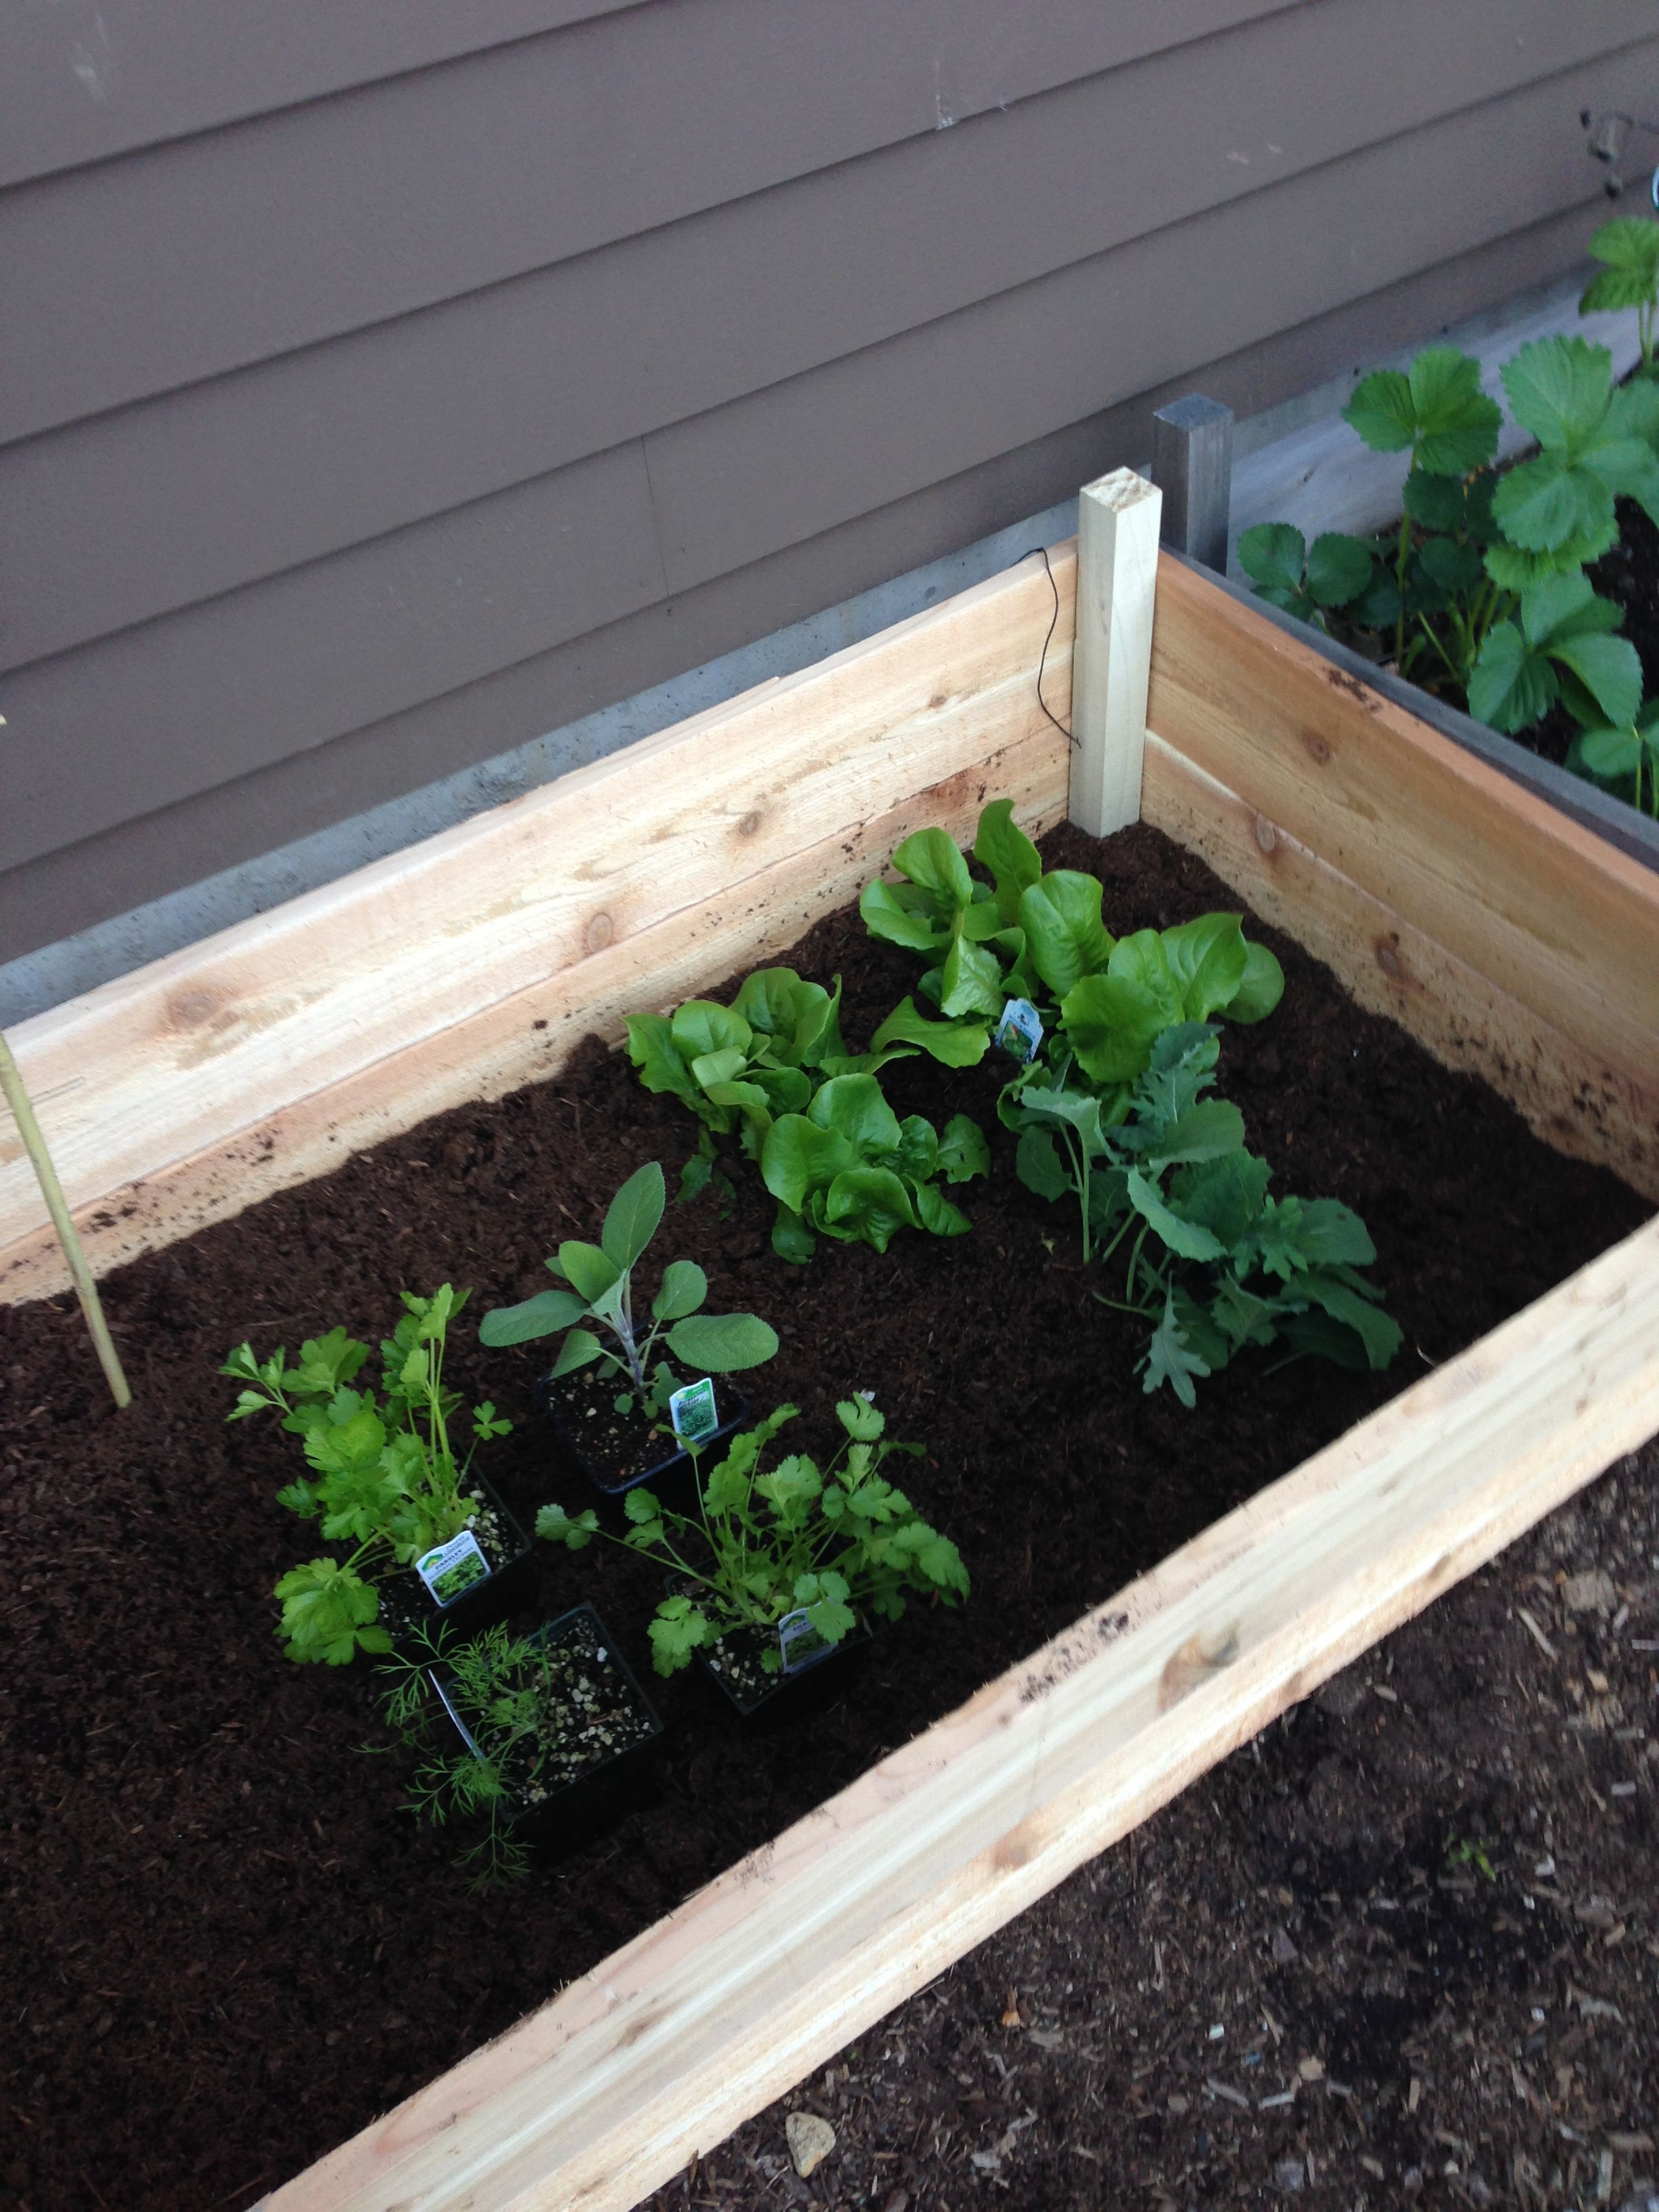 Free downloadable plan for building your own raised garden ...